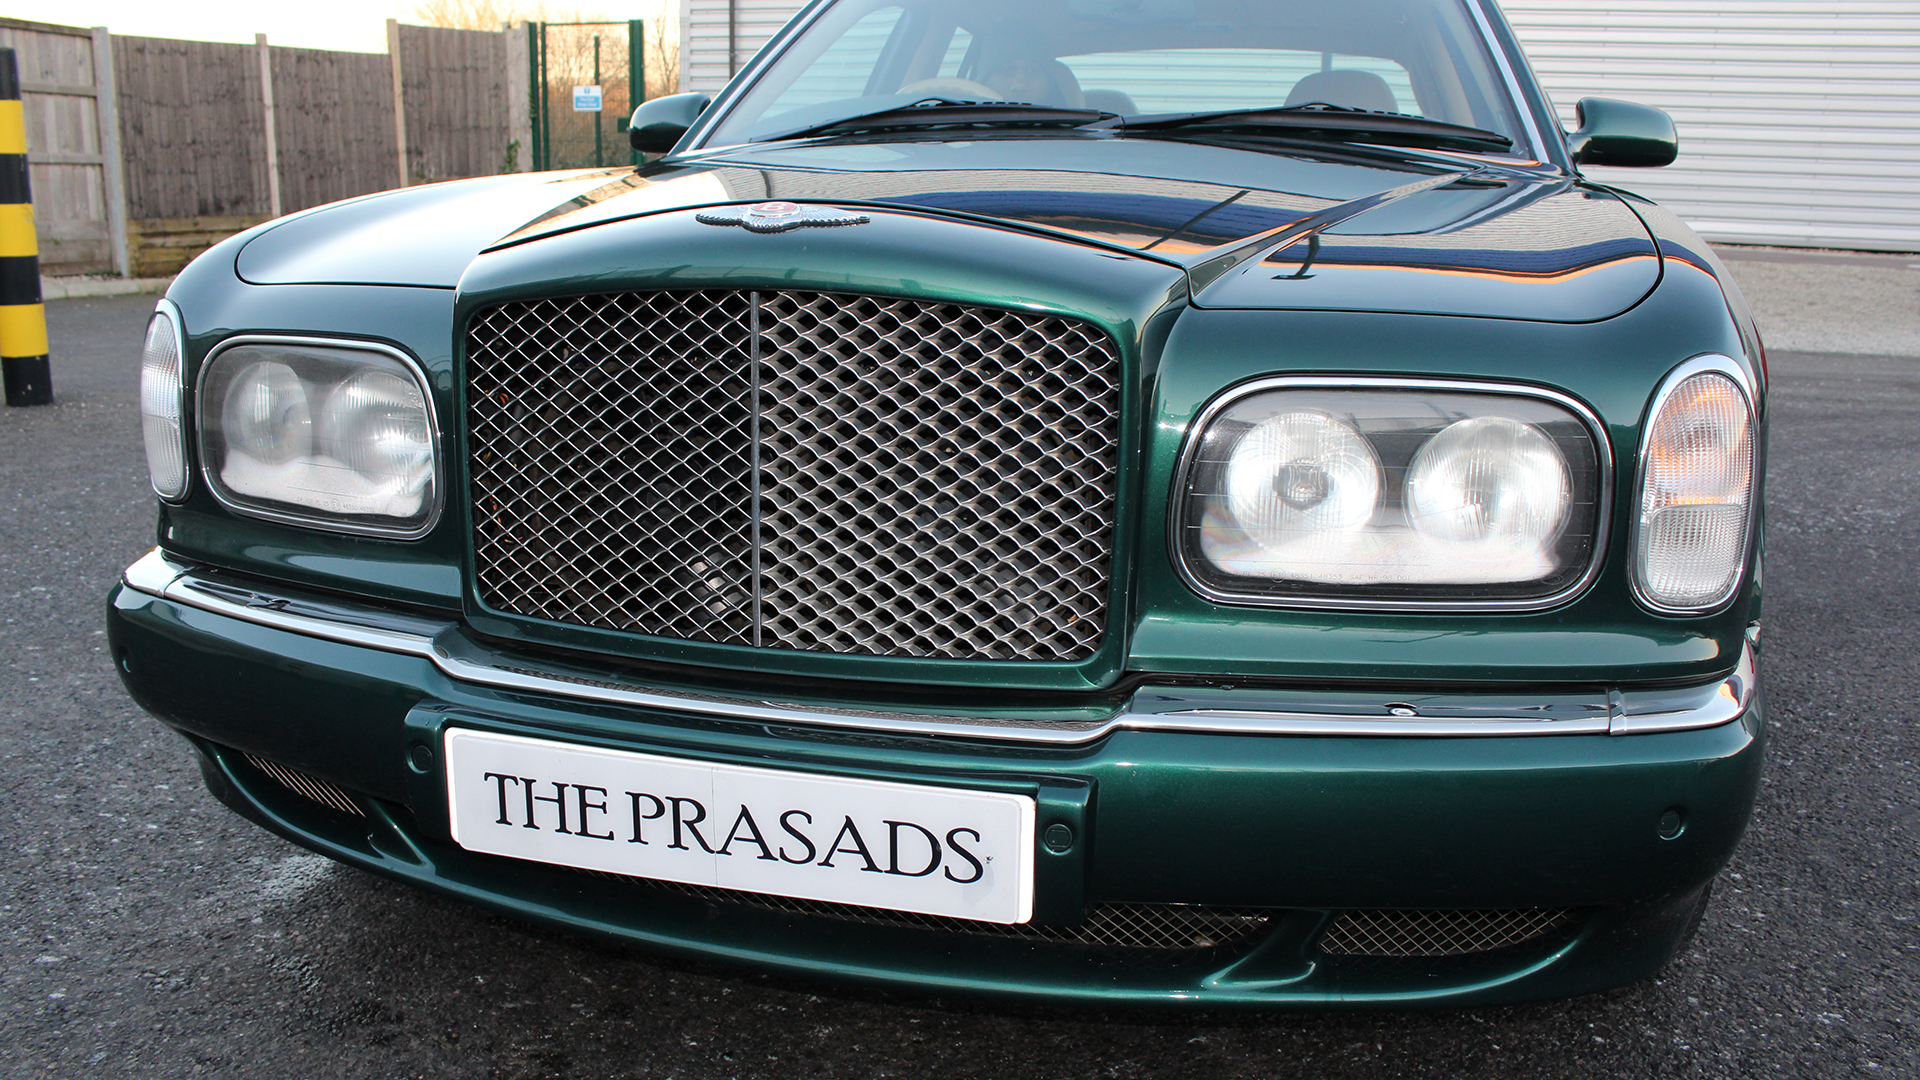 Prasads Automotive Green Arnage